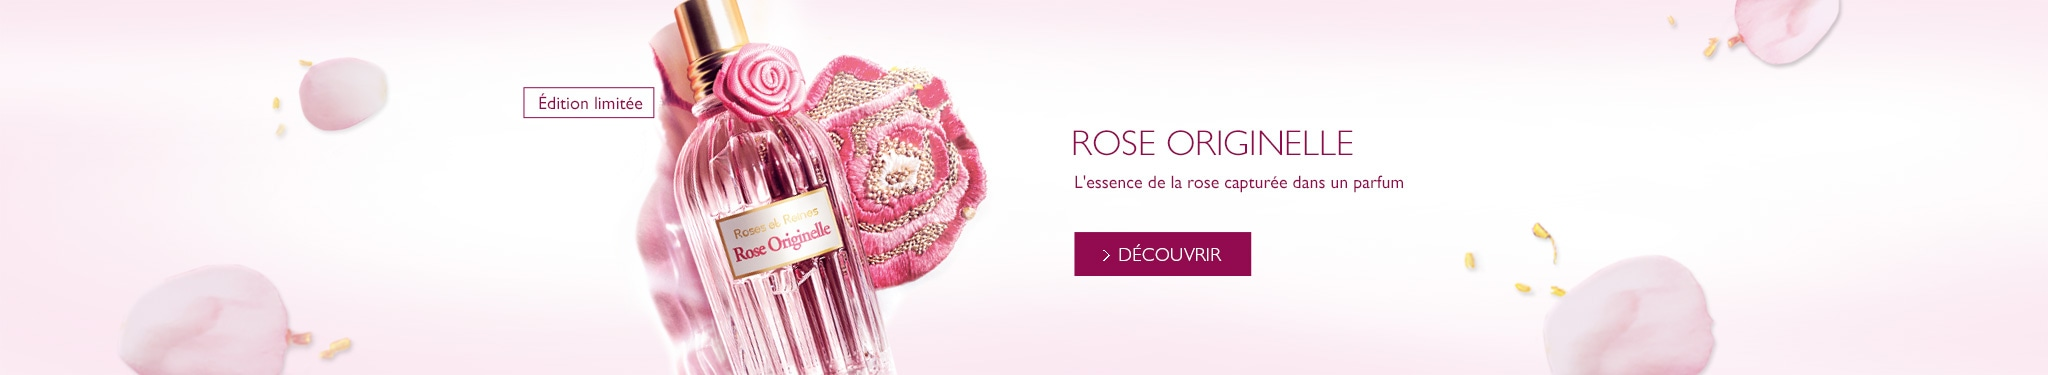 Rose Originelle| L'Occitane